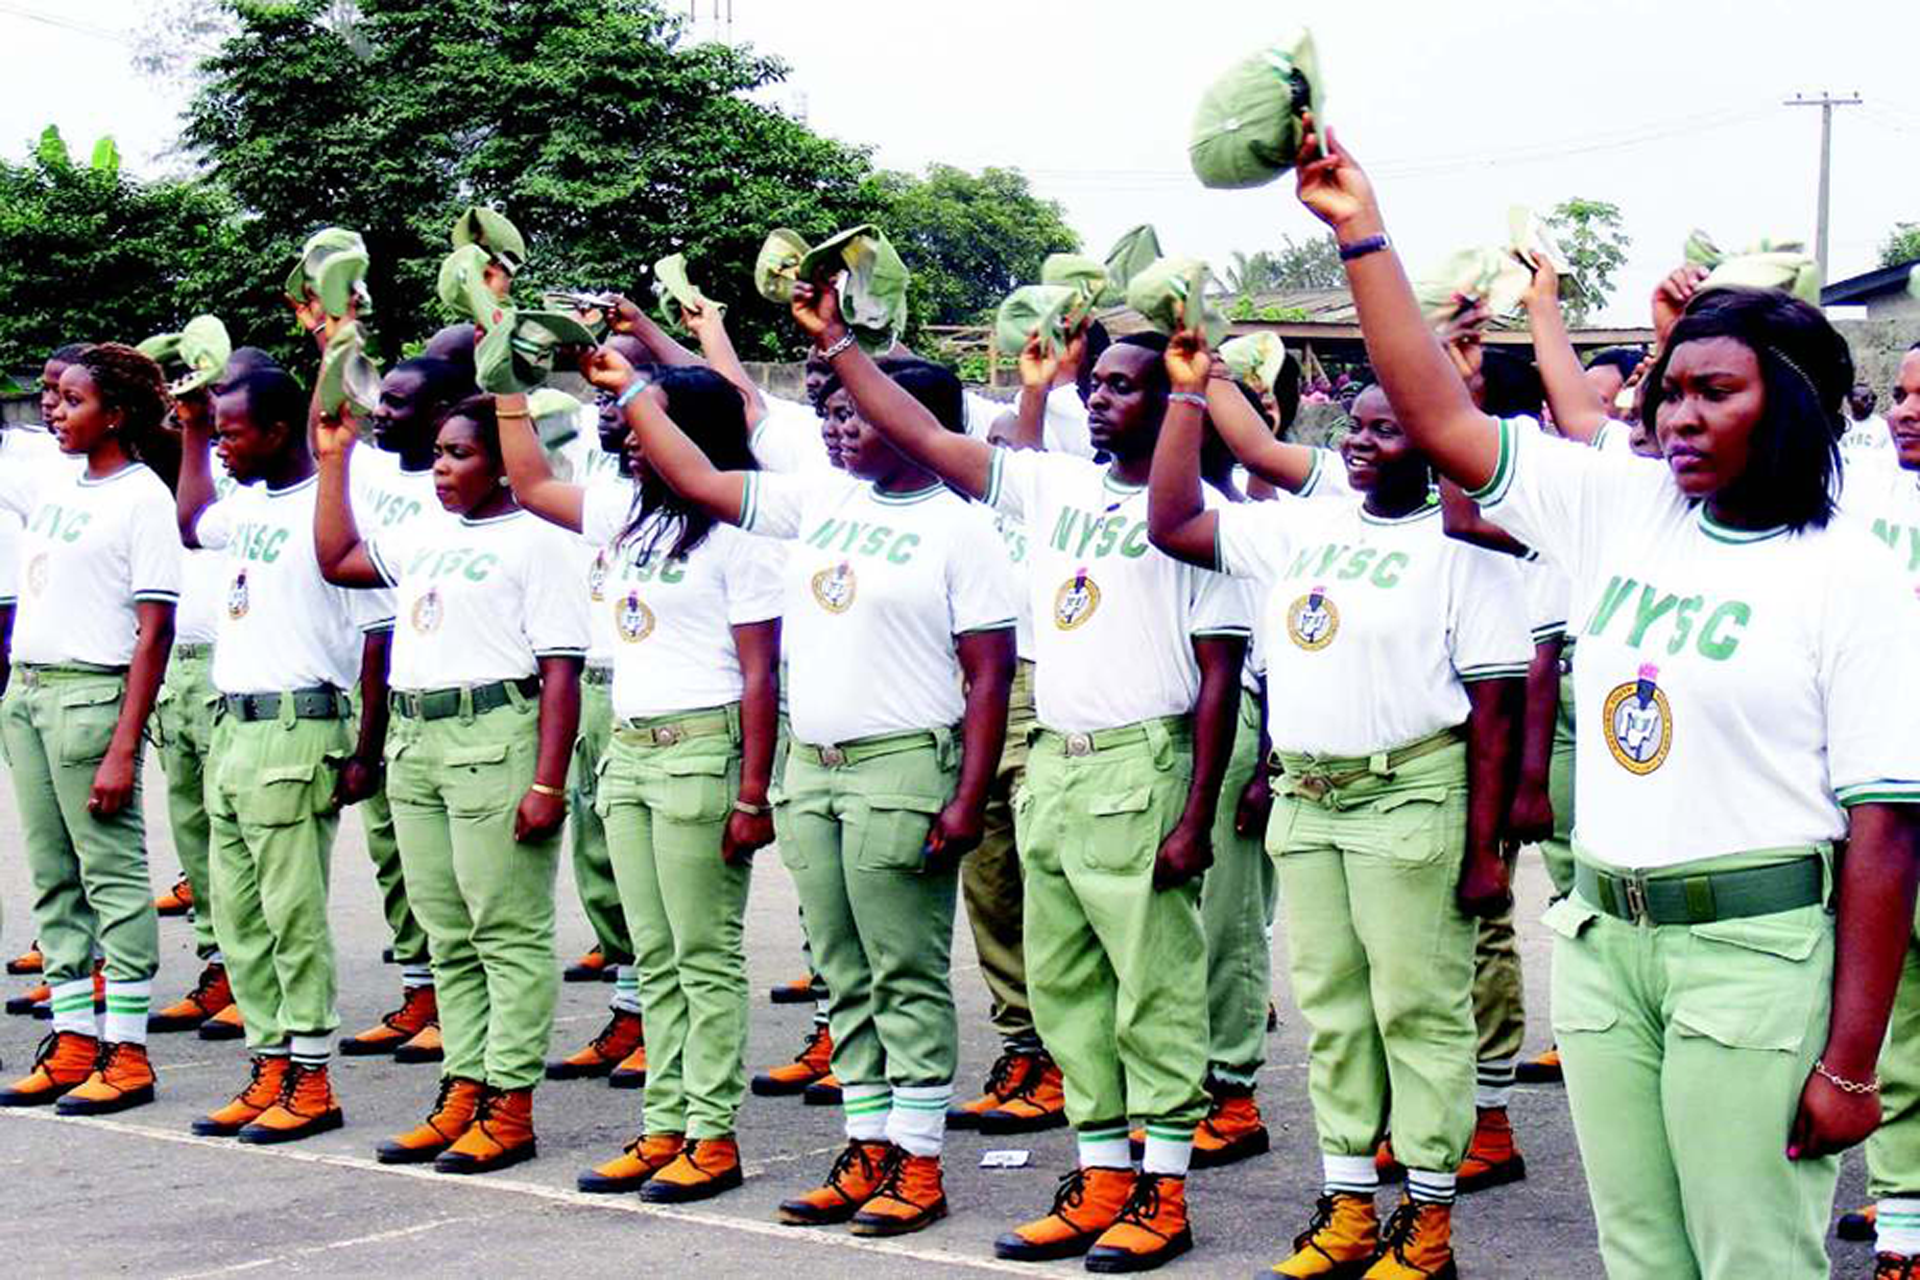 Bill Seeking To Scap NYSC reaches second reading in the house of Rep